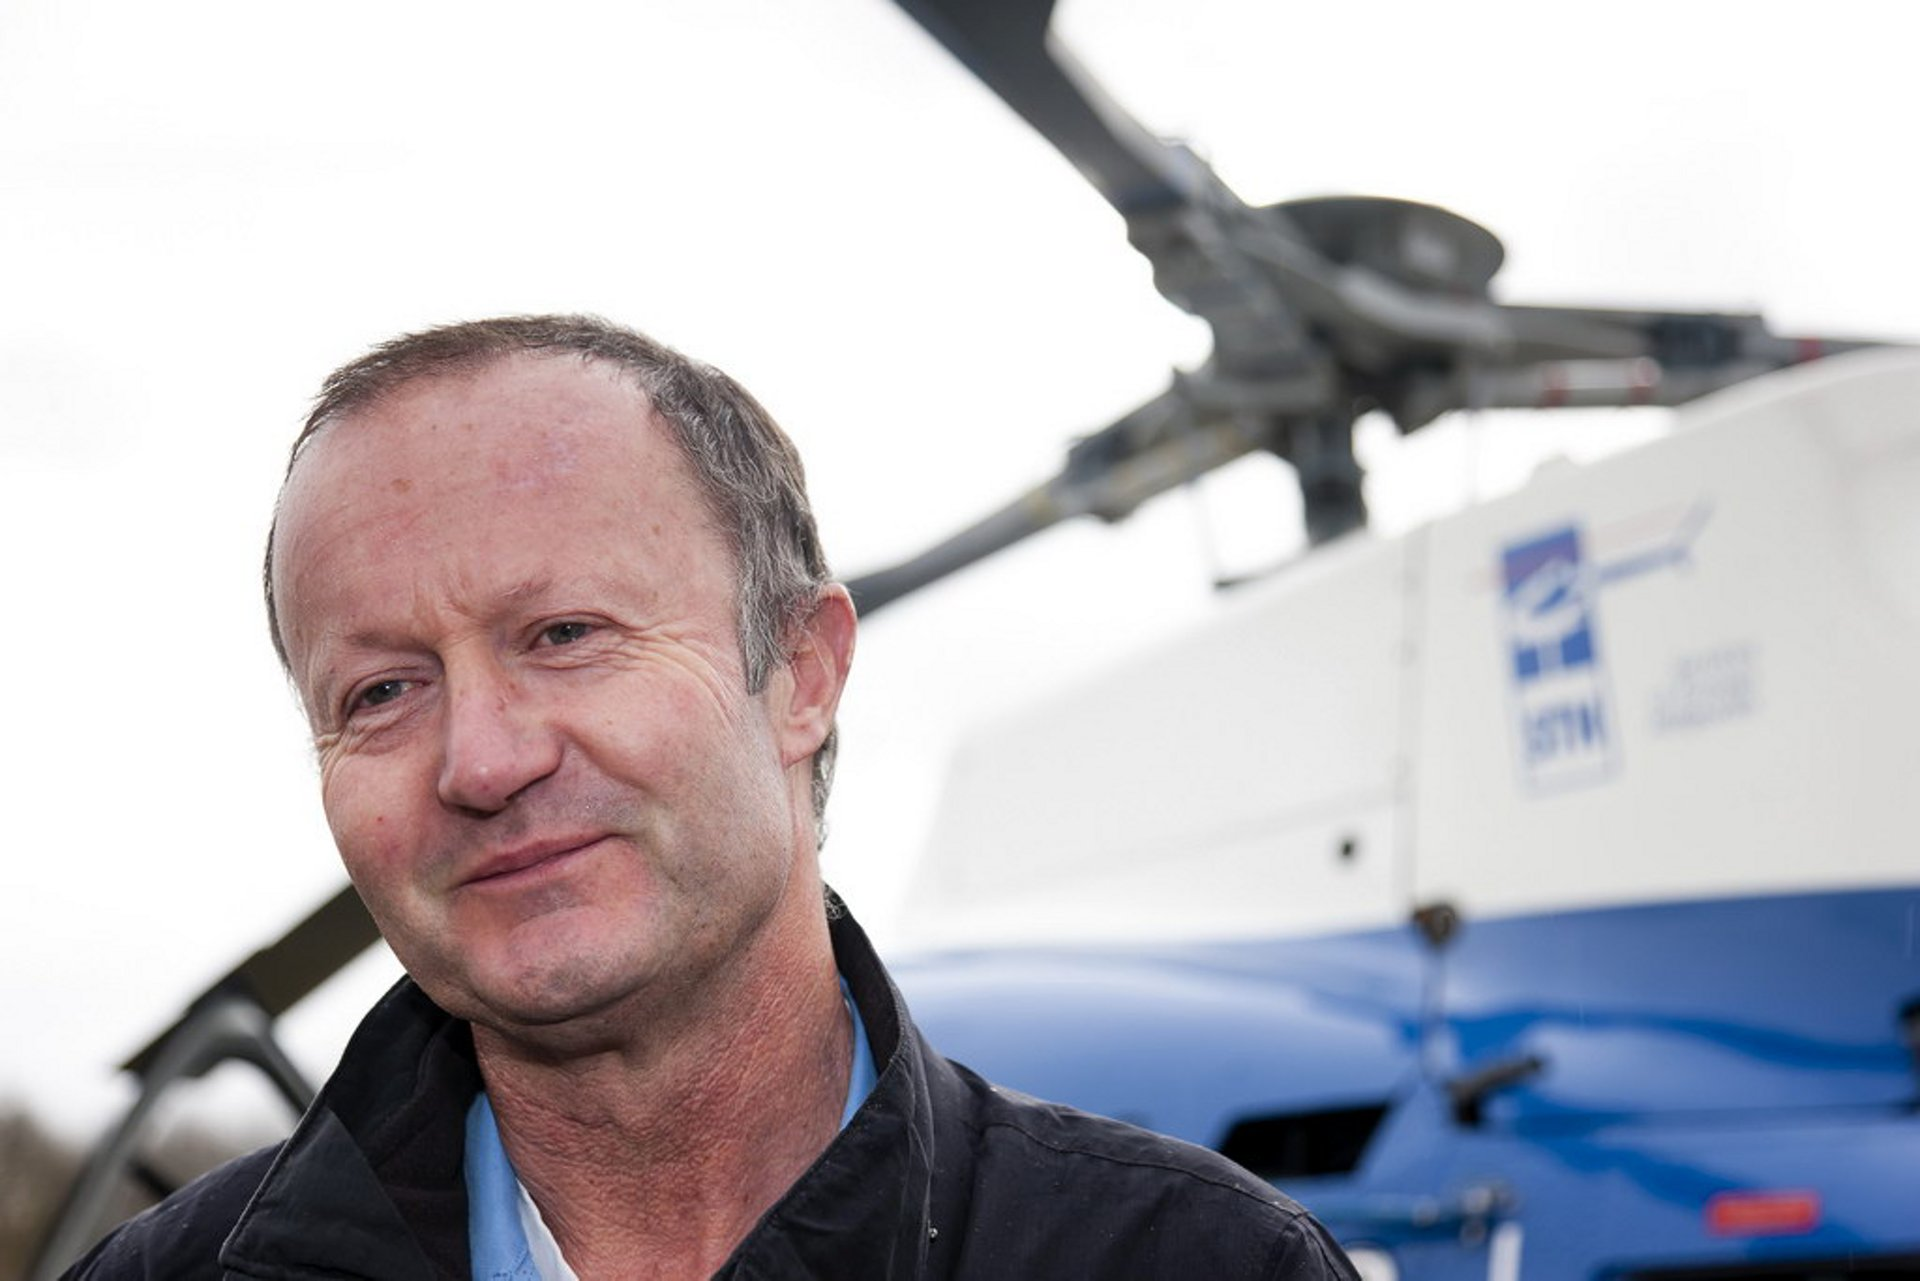 30,000 flight hours: RTE pilot reaches new milestone on Ecureuil aircraft